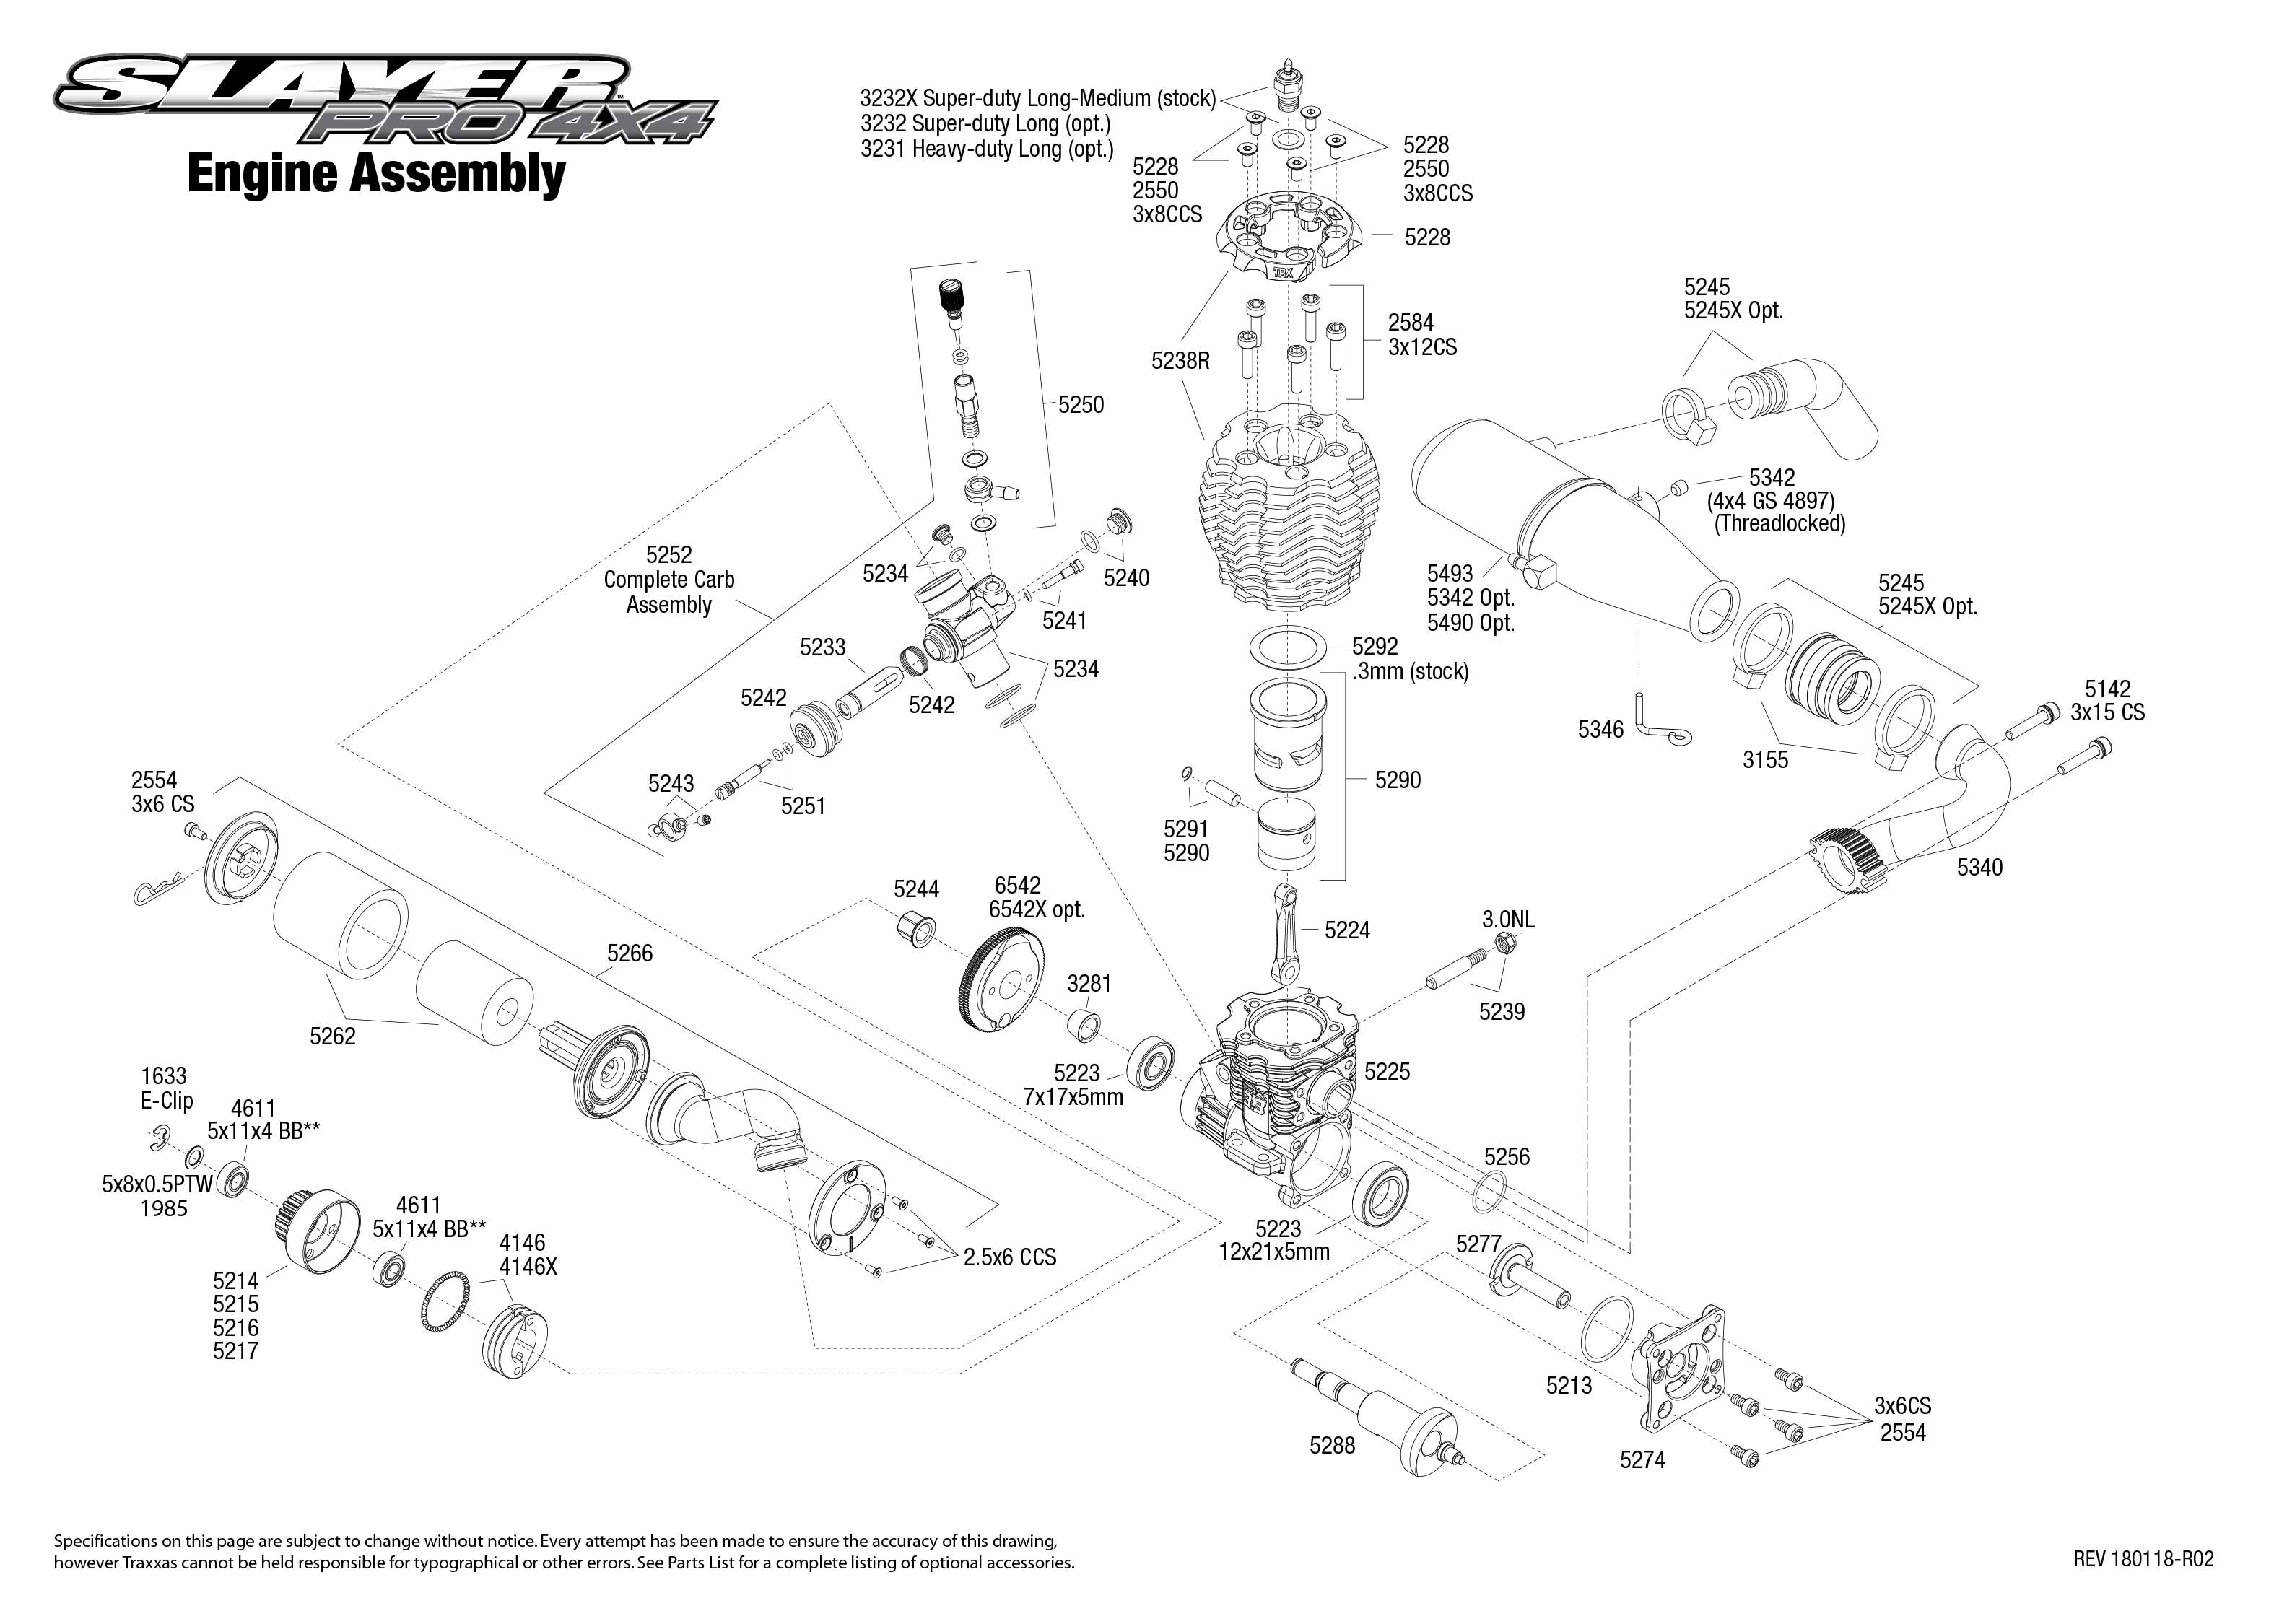 hyundai 3 5 engine diagram traxxas 3 3 engine diagram slayer pro 4x4 (59076-3) engine assembly exploded view ...